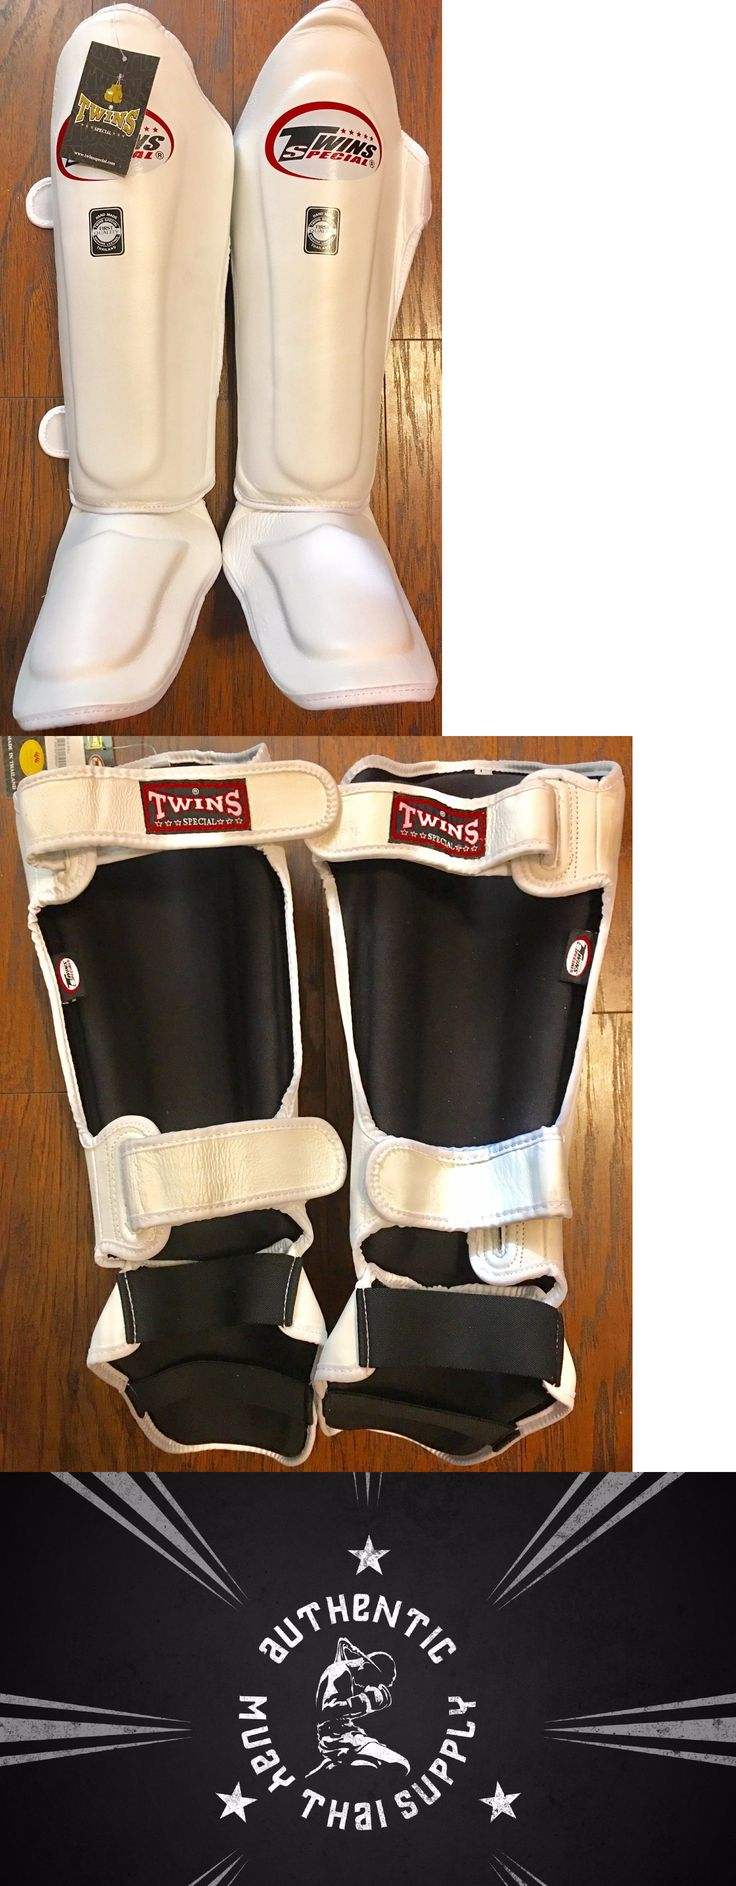 Shin Guards 179782: Twins Special Kick Boxing Mma Muay Thai Sgl10 Large White Leather Shin Guards -> BUY IT NOW ONLY: $69.99 on eBay!